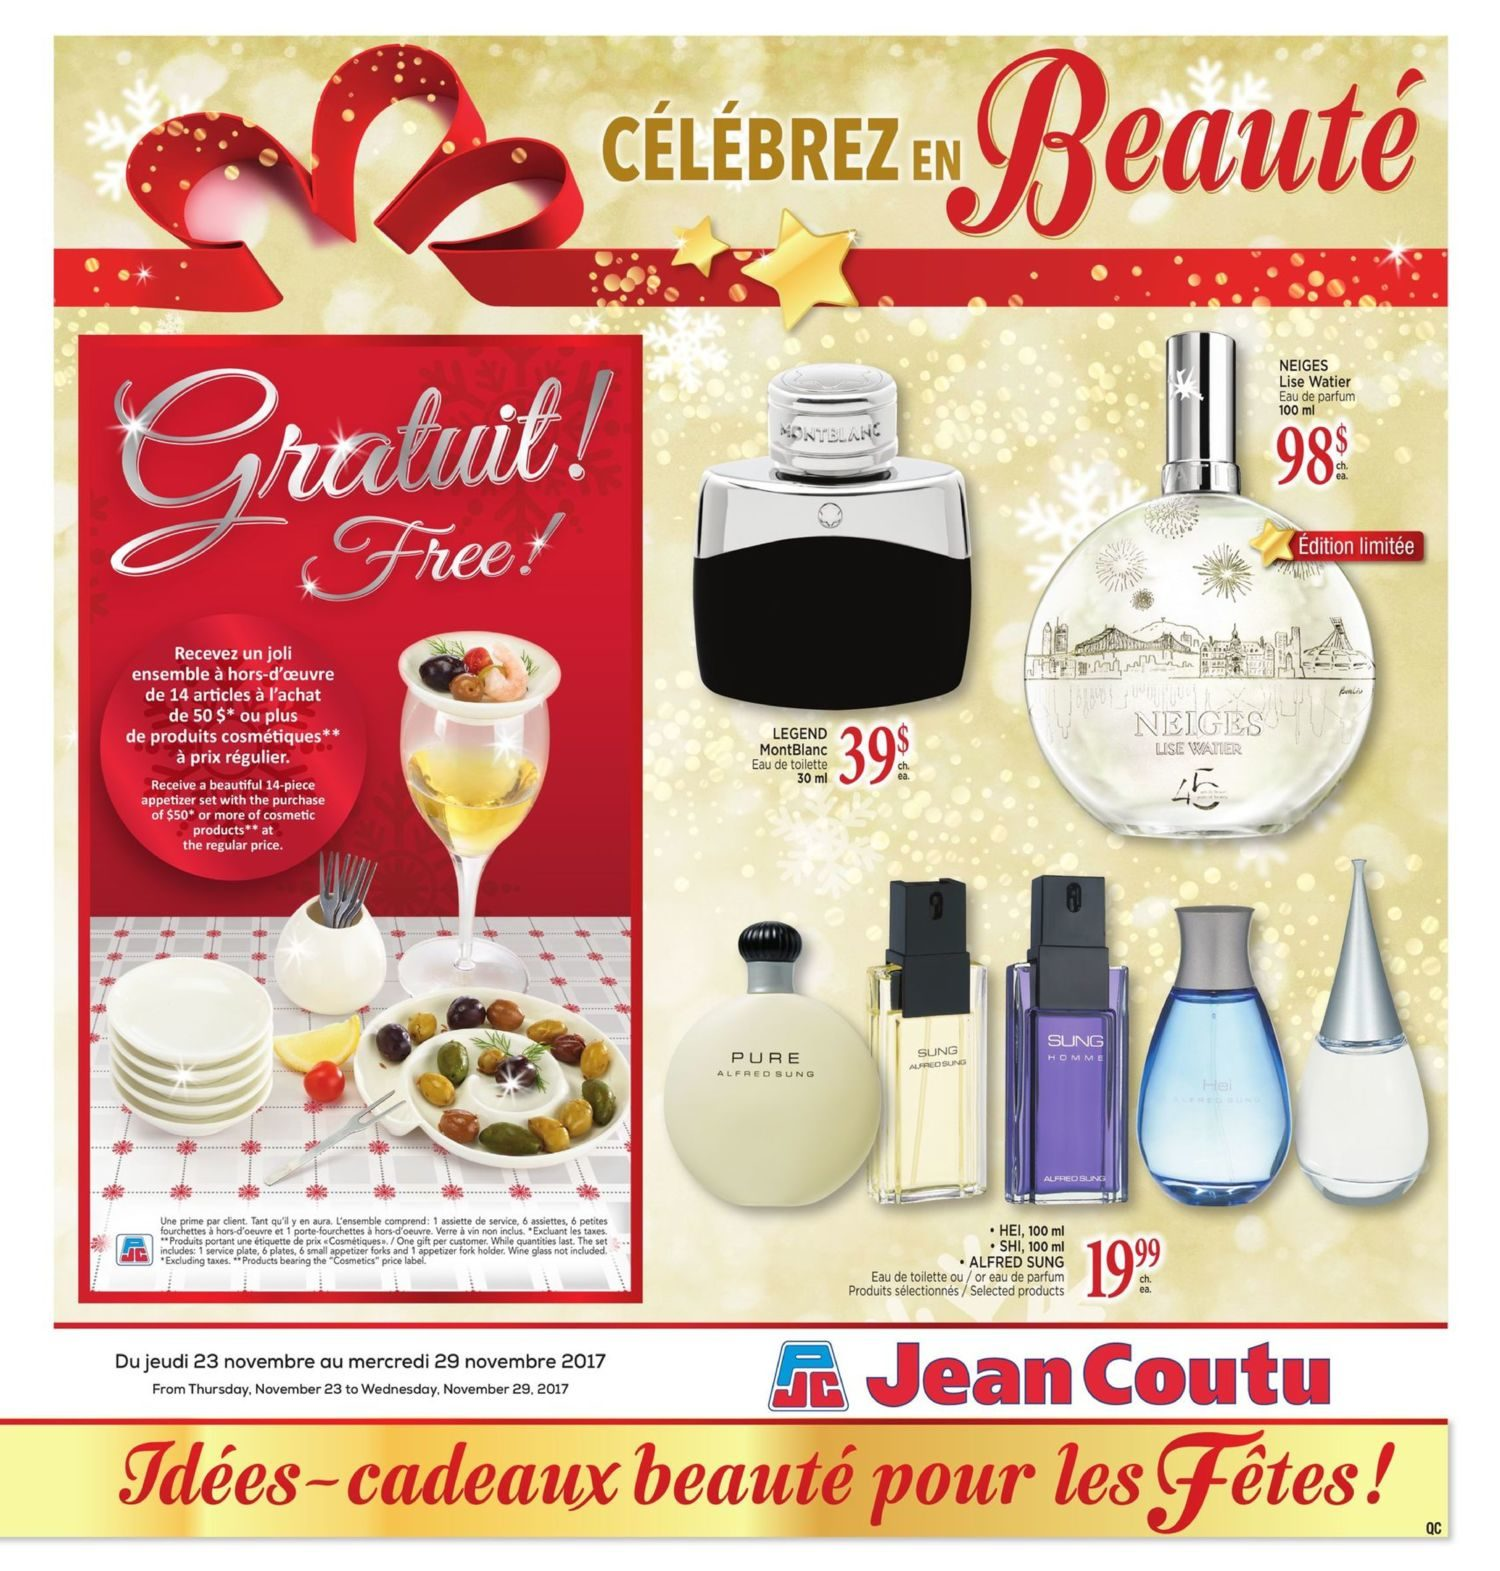 Jean Coutu Weekly Flyer Celebrate With Beauty Nov 23 29